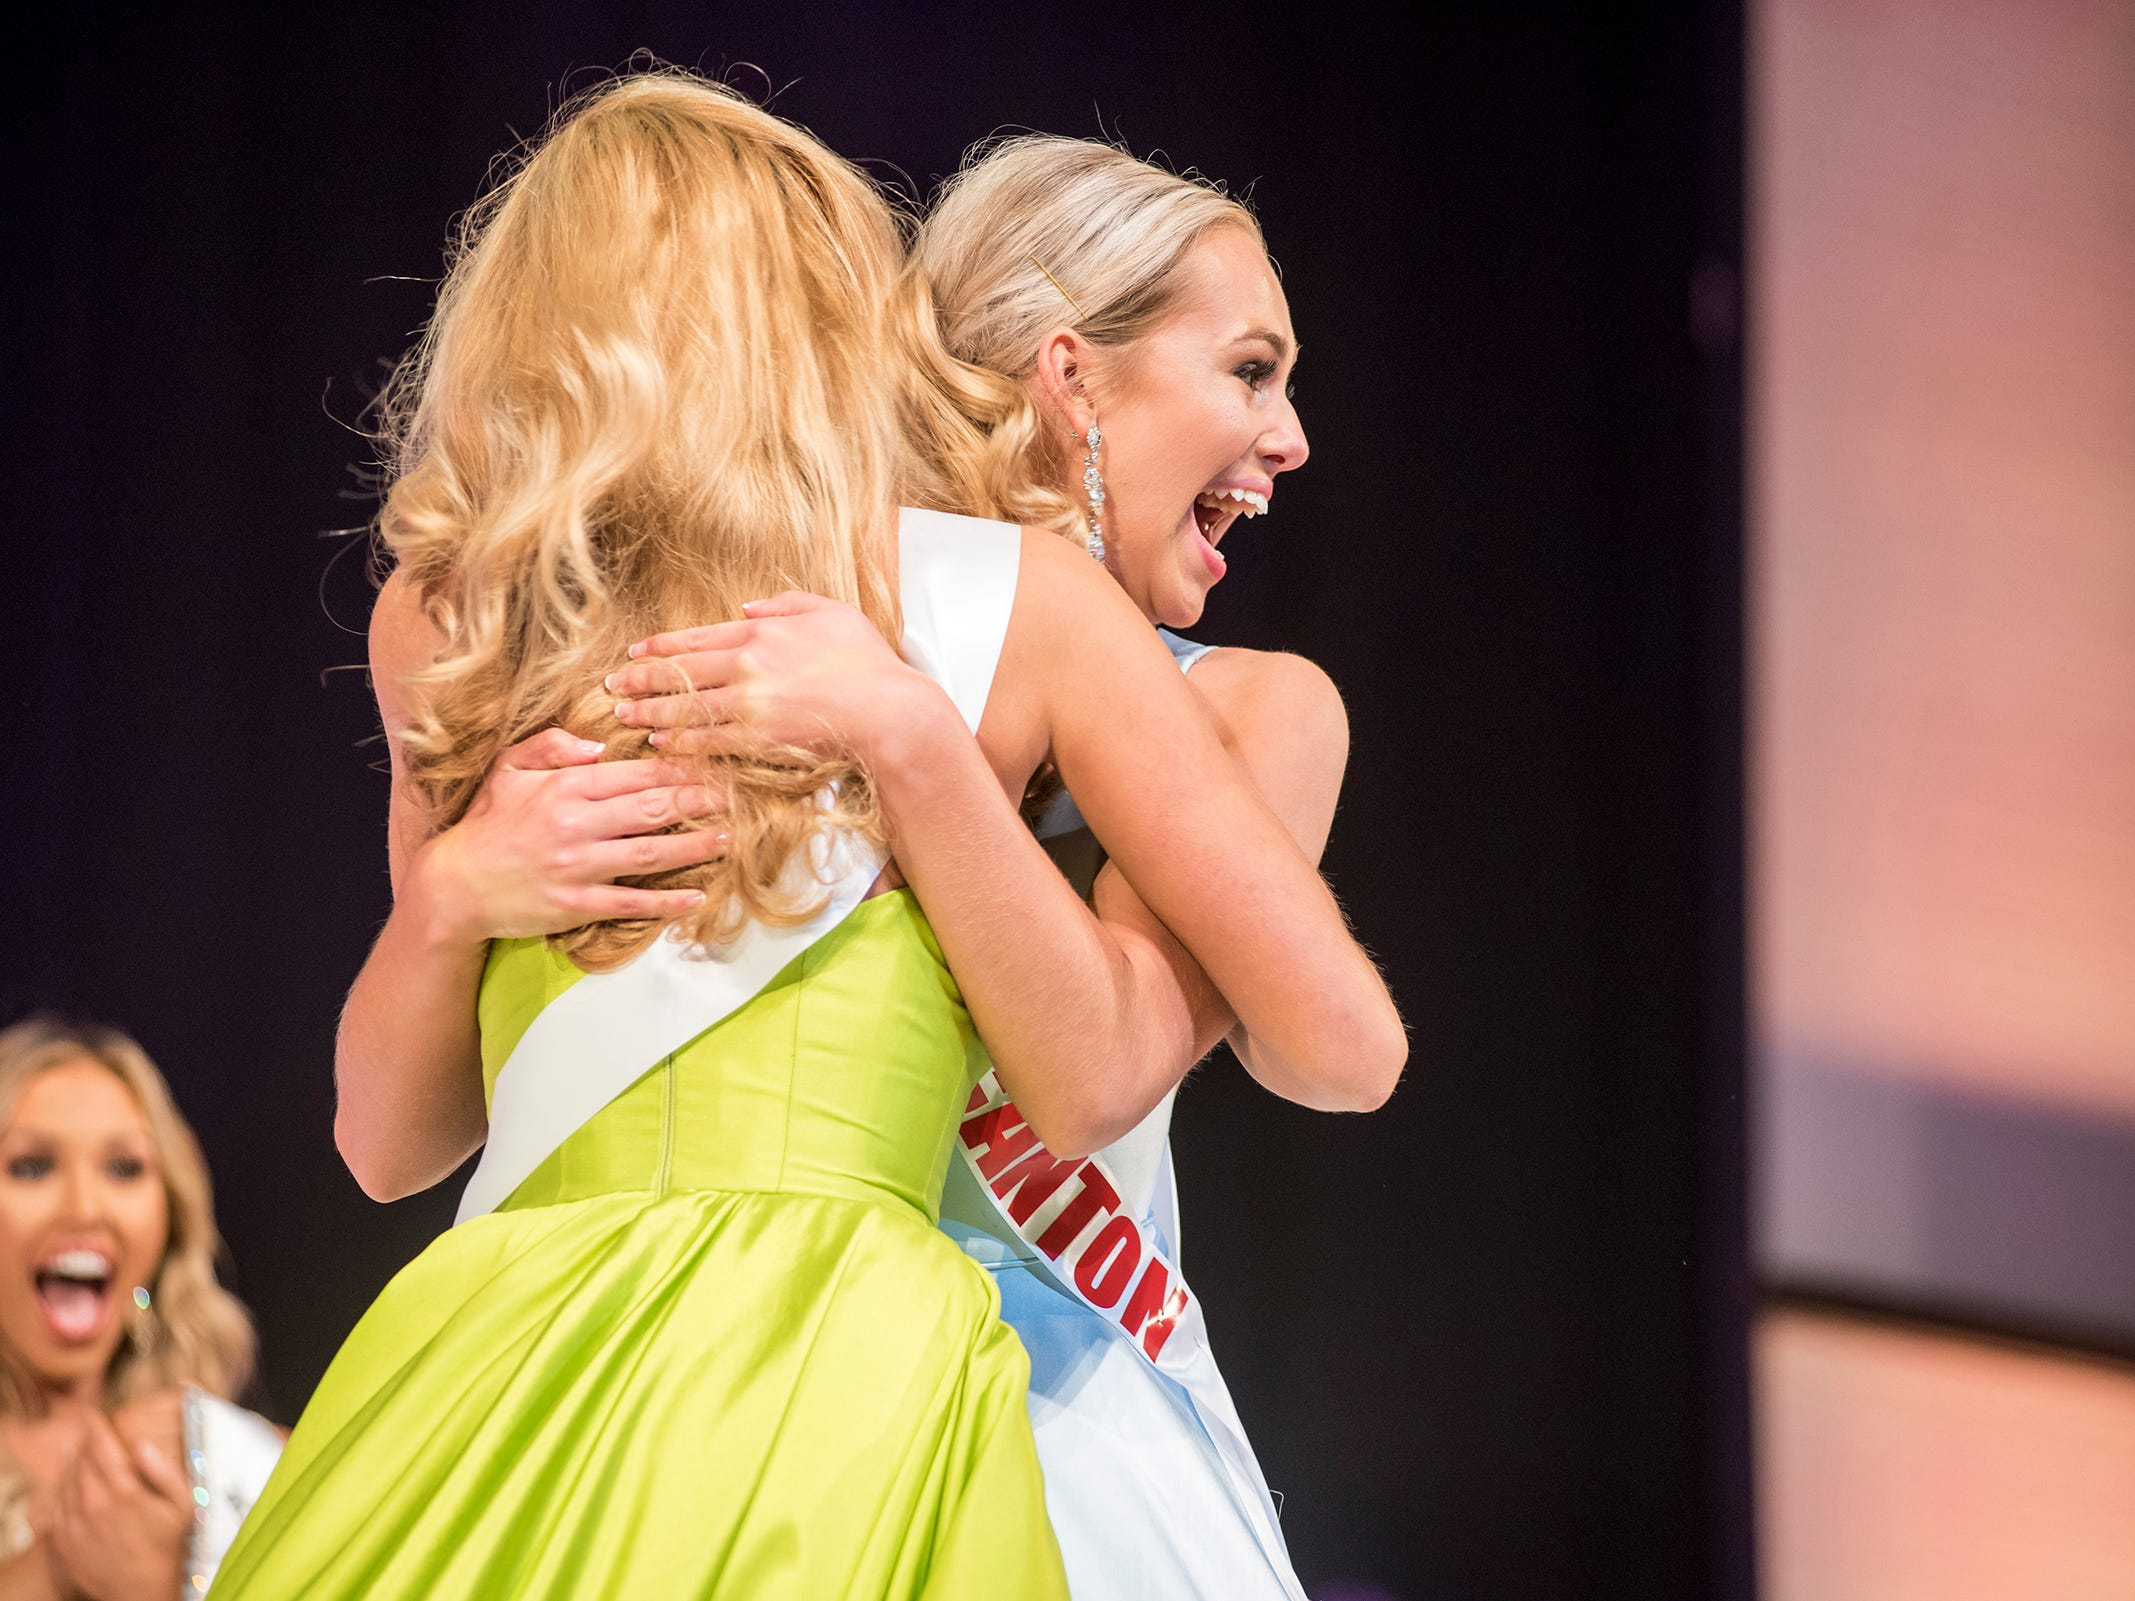 Miss Canton Teen Alexis Lubecki, right, hugs Miss Great Lakes Teen Rebecca Larsen after being named Miss Michigan Teen USA Saturday, Sept. 22, 2018 during the Miss Michigan Teen USA pageant at McMorran Theater.